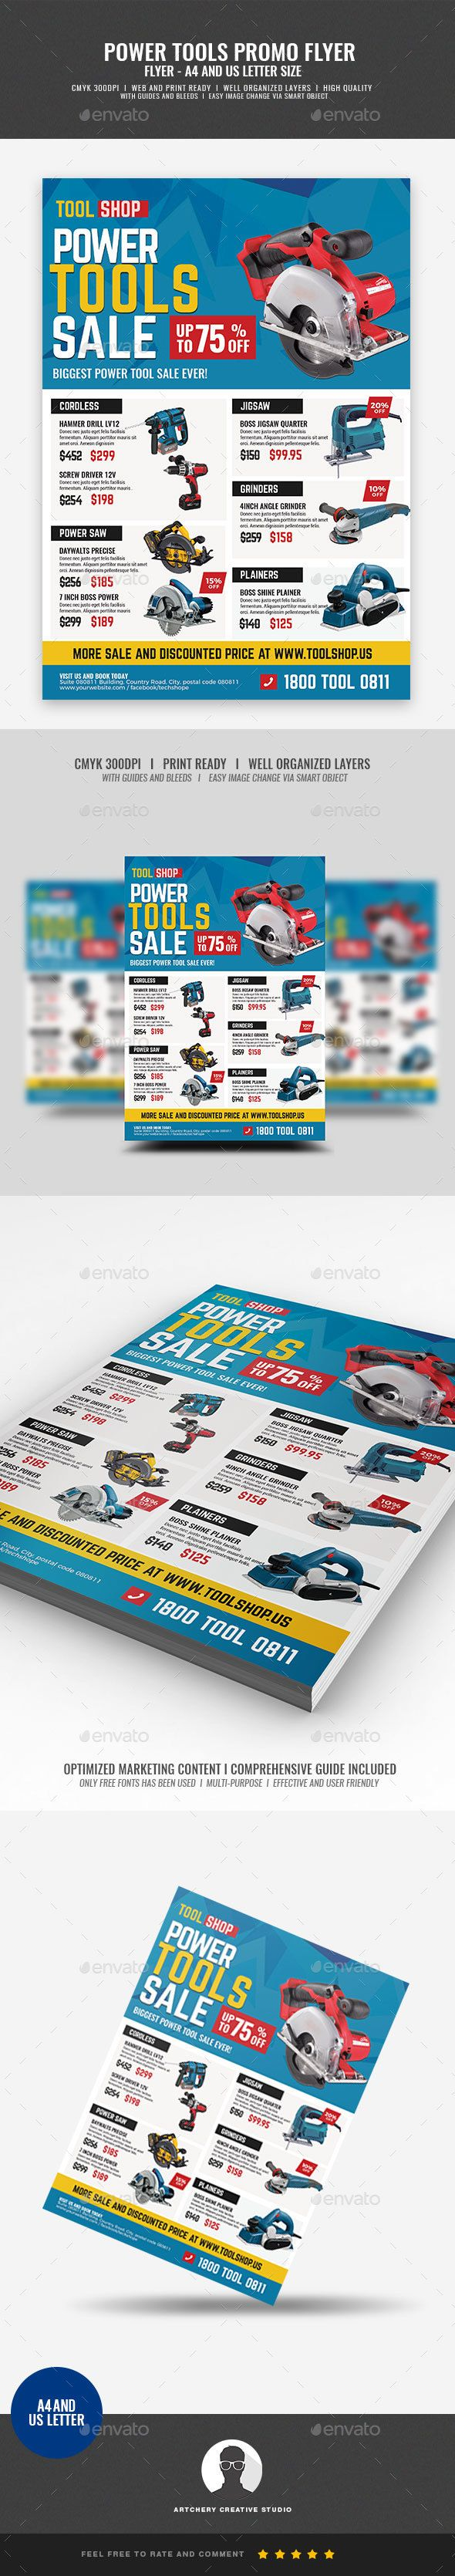 Power Tools Sale Flyer Template PSD